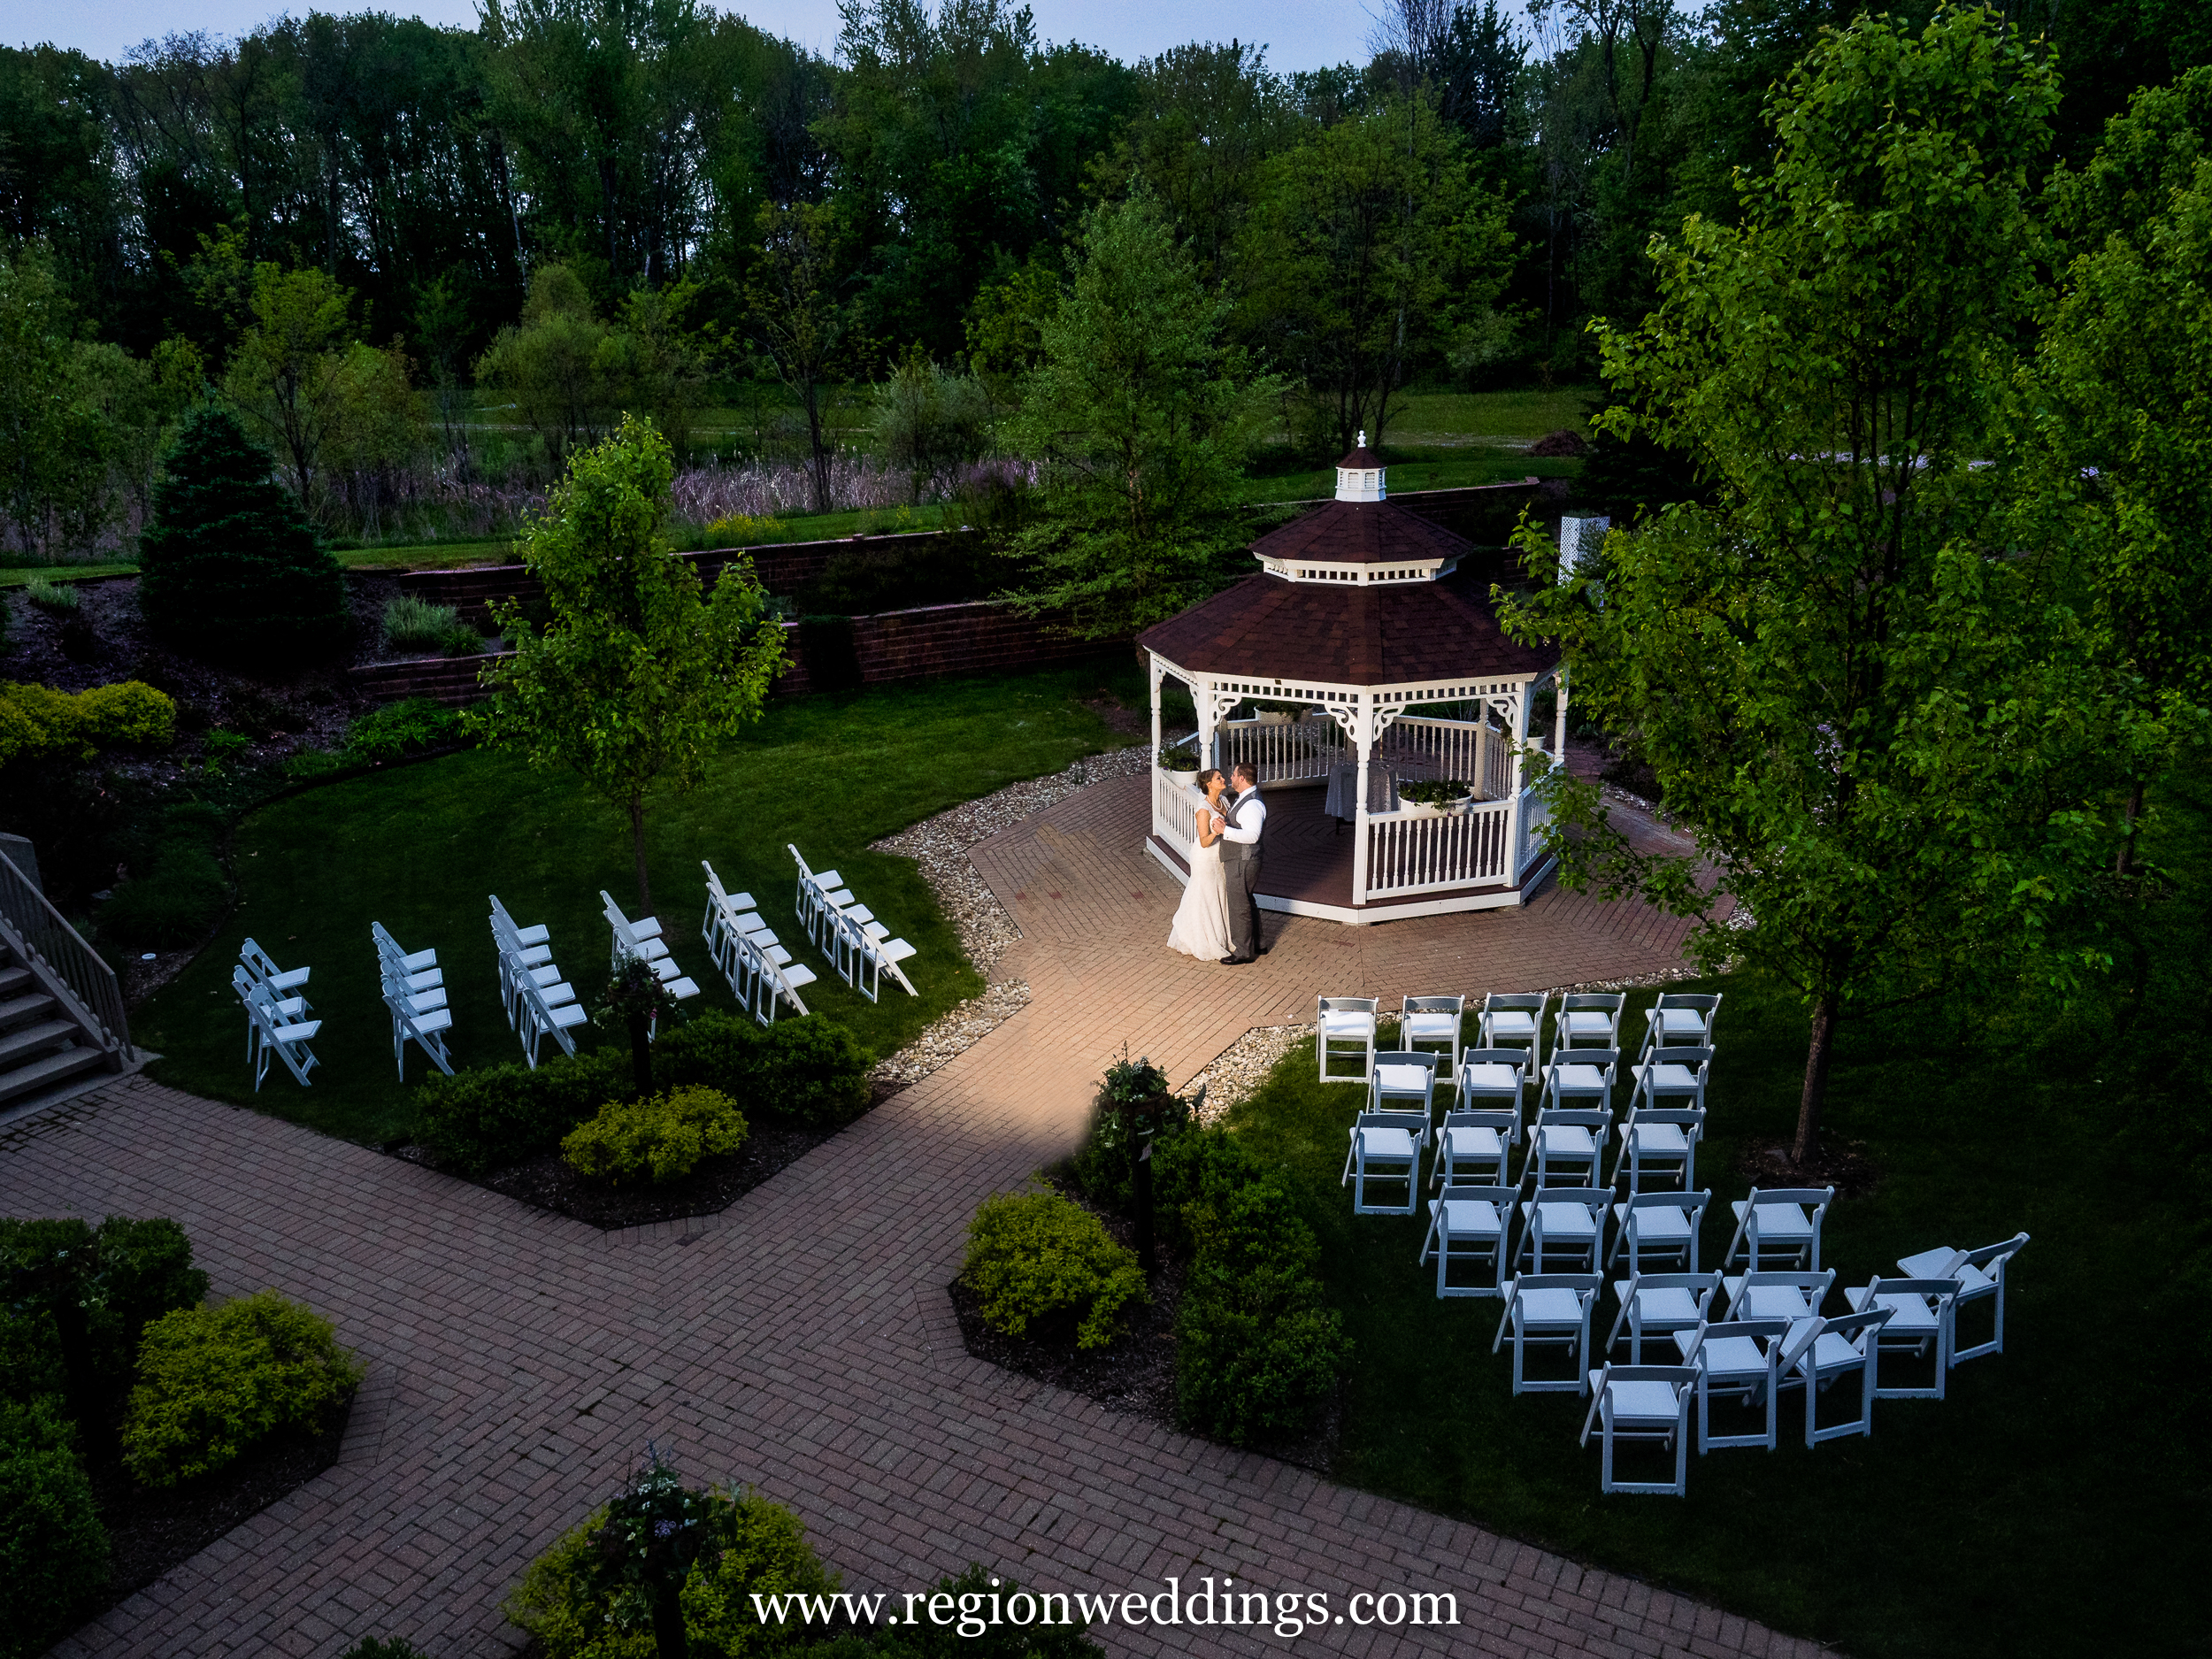 Outdoor wedding garden at Trinity Hall in Chesterton, Indiana.